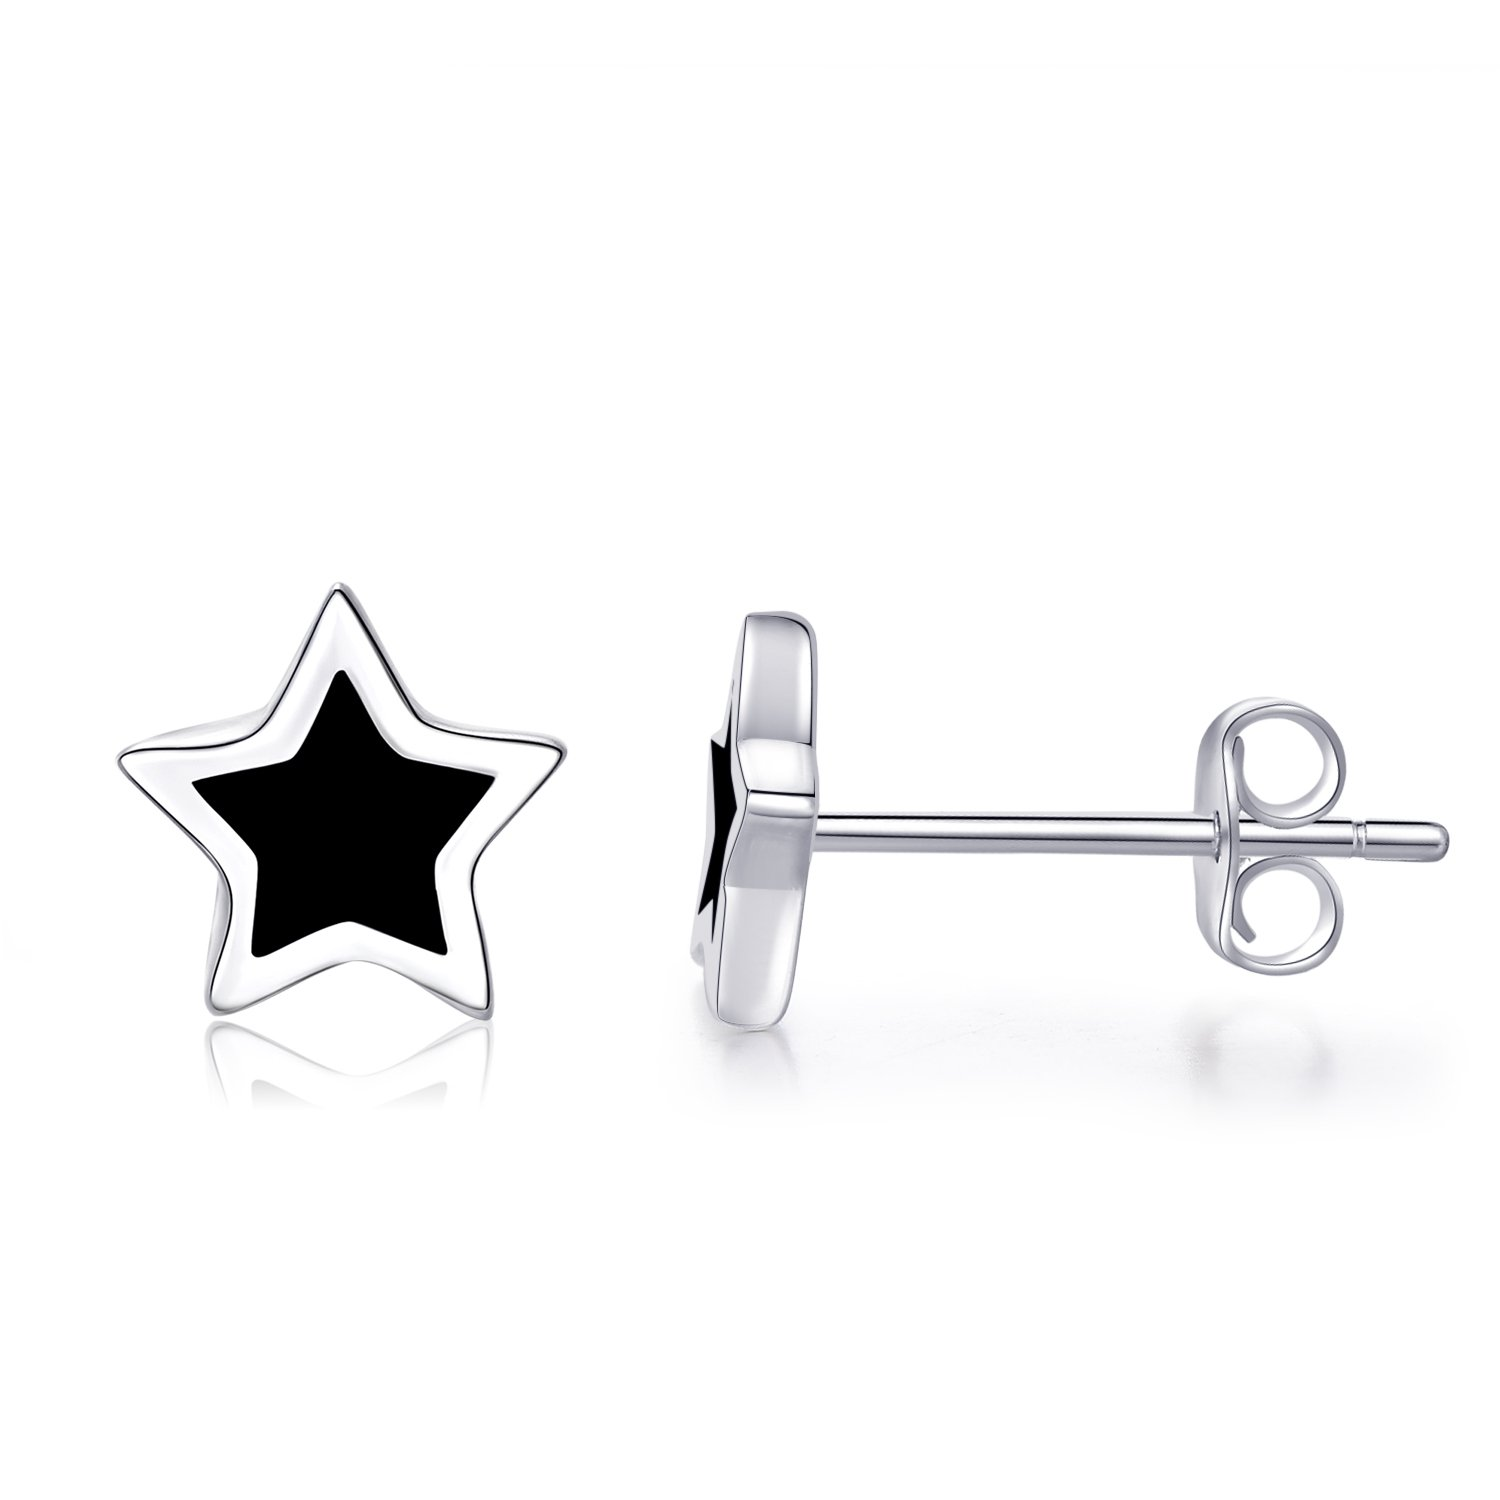 EVERU Black Star Stud Earrings Sterling Silver for Men and Women